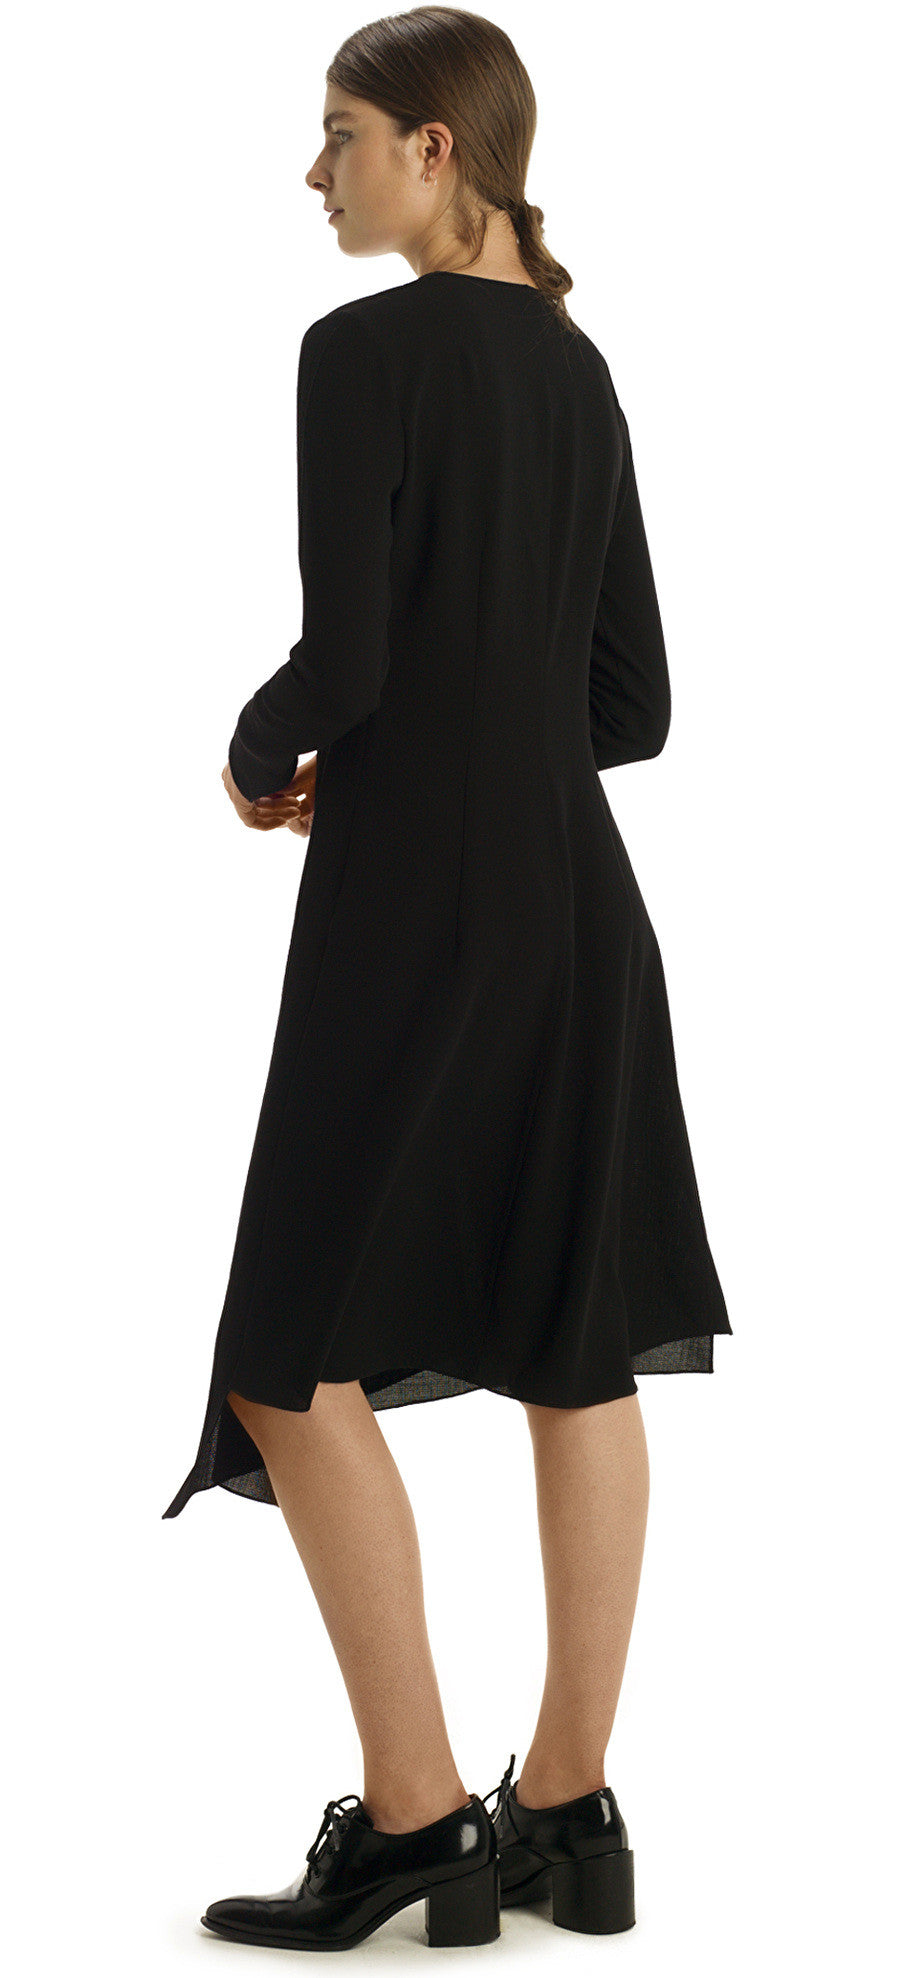 LEGER BLACK DRESS